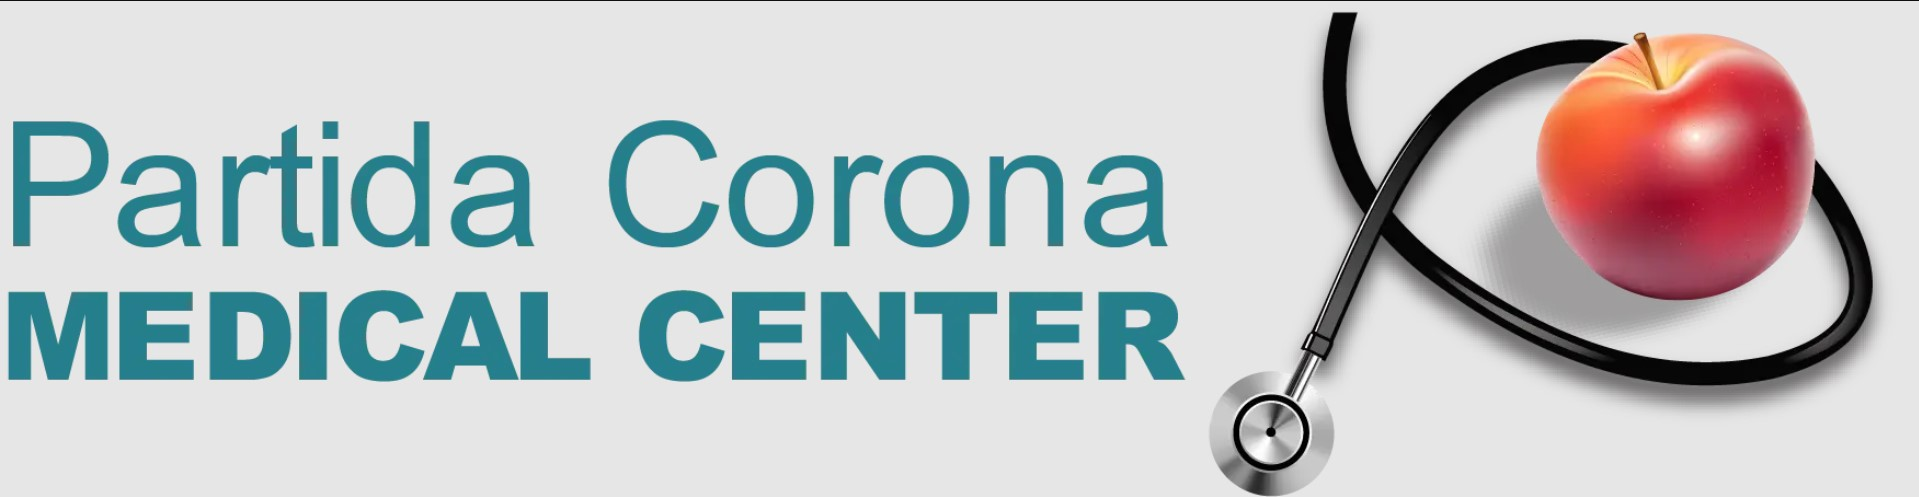 Get Early Access to Direct Primary Care Services with Partida Corona Medical Center in Las Vegas, NV